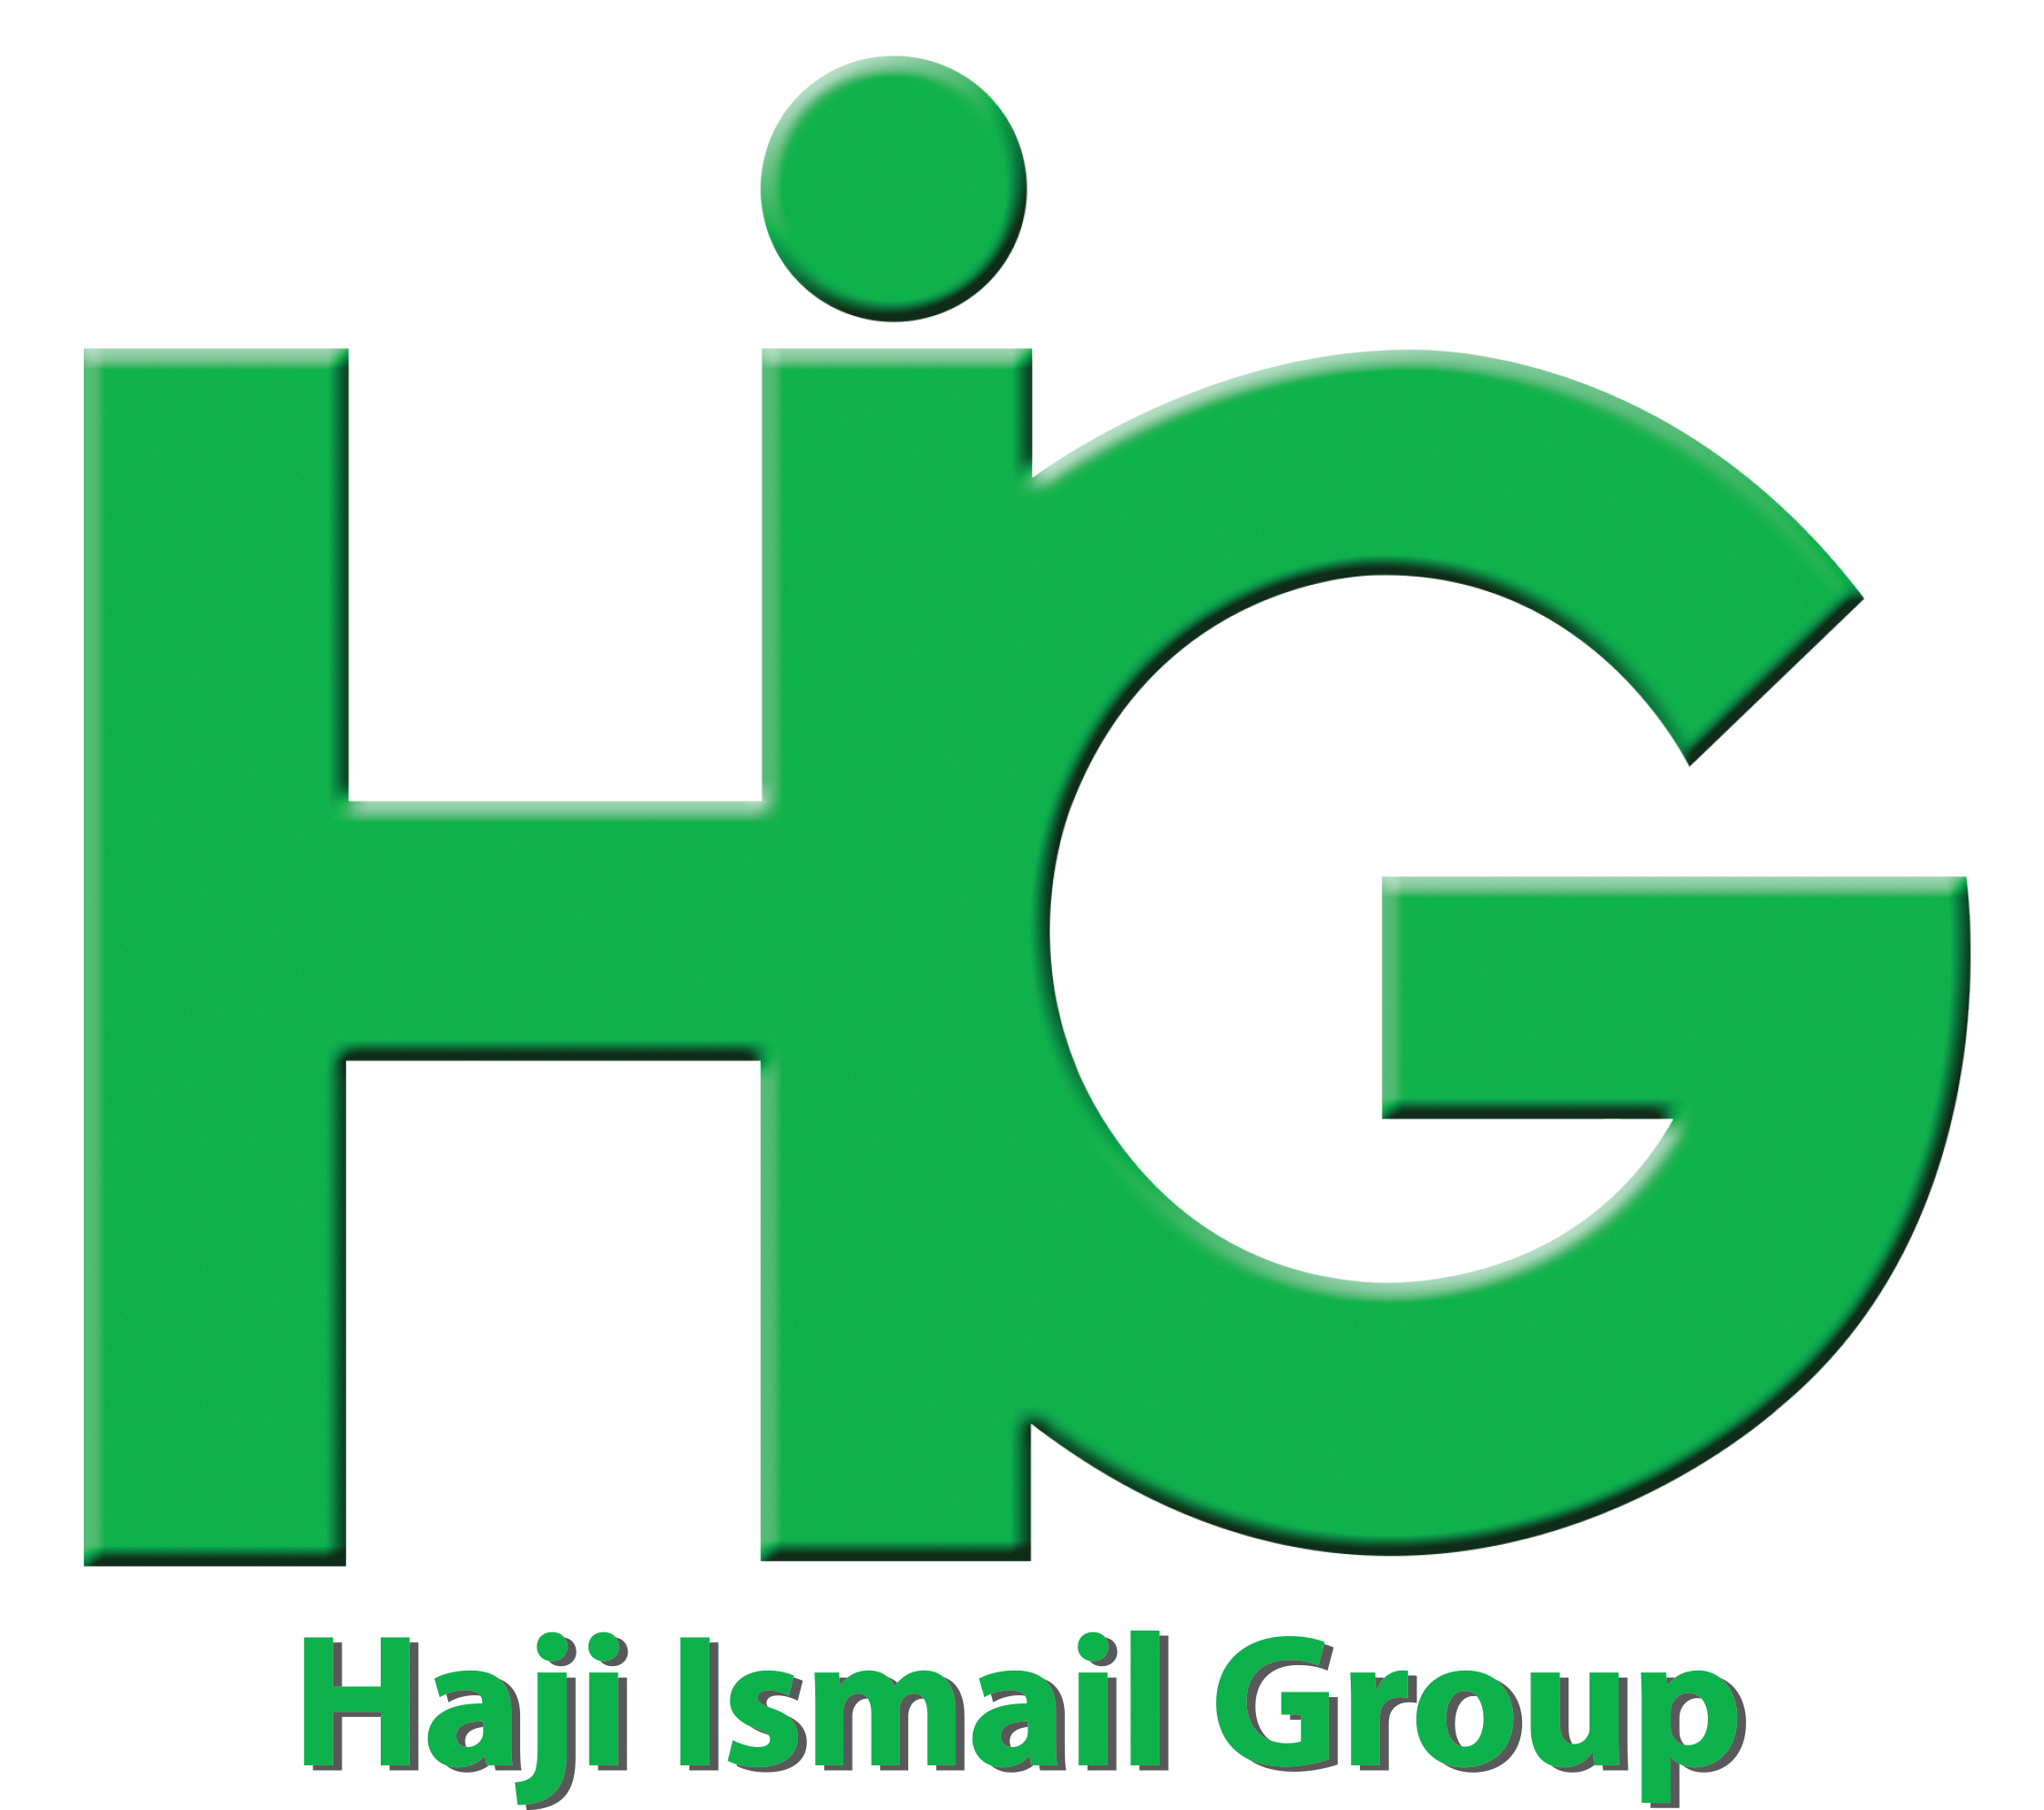 Haji Ismail Group